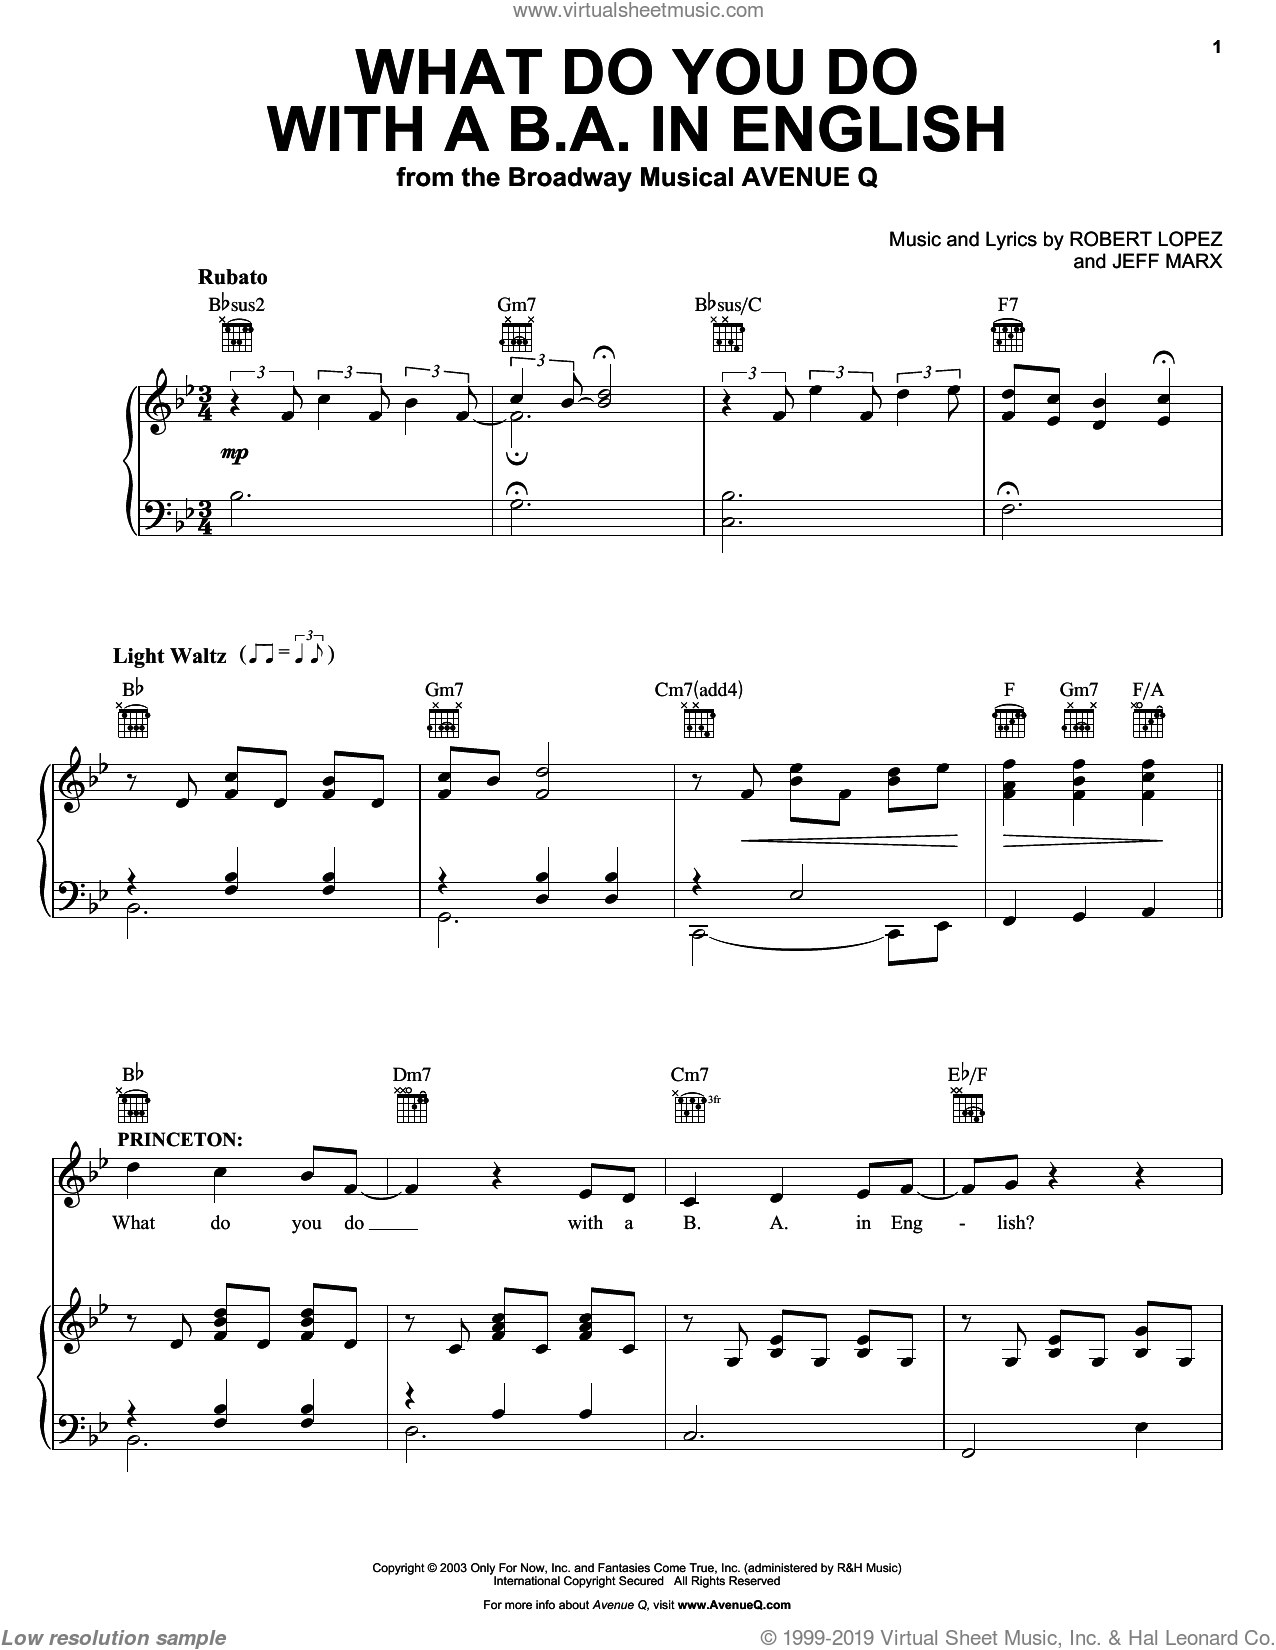 What Do You Do With A B.A. In English sheet music for voice and piano by Robert Lopez and Avenue Q. Score Image Preview.